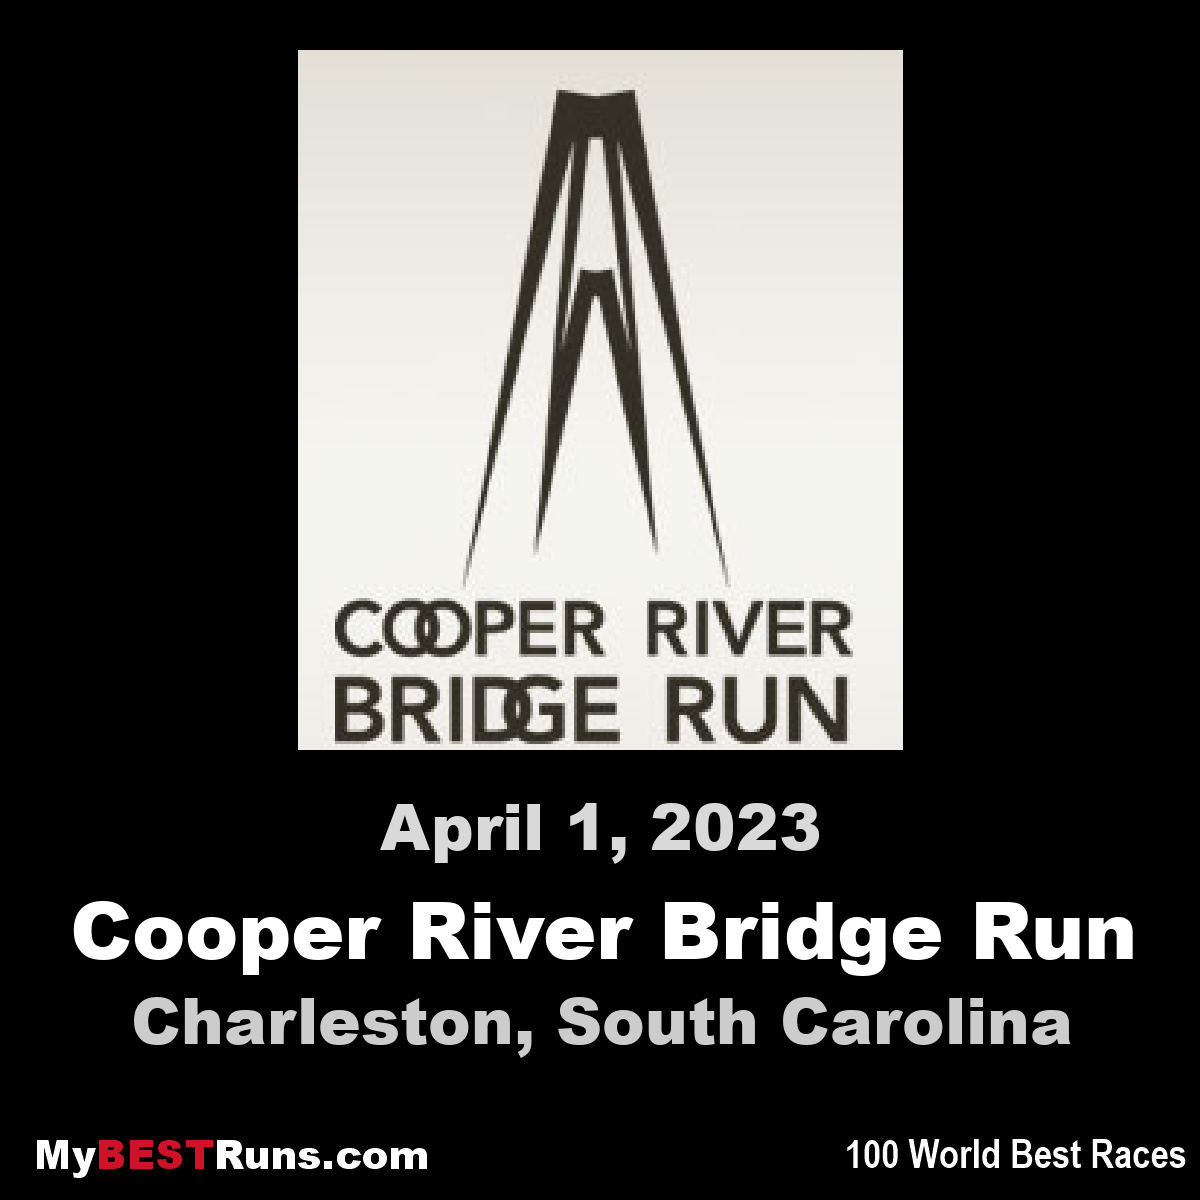 Cooper River Bridge Run